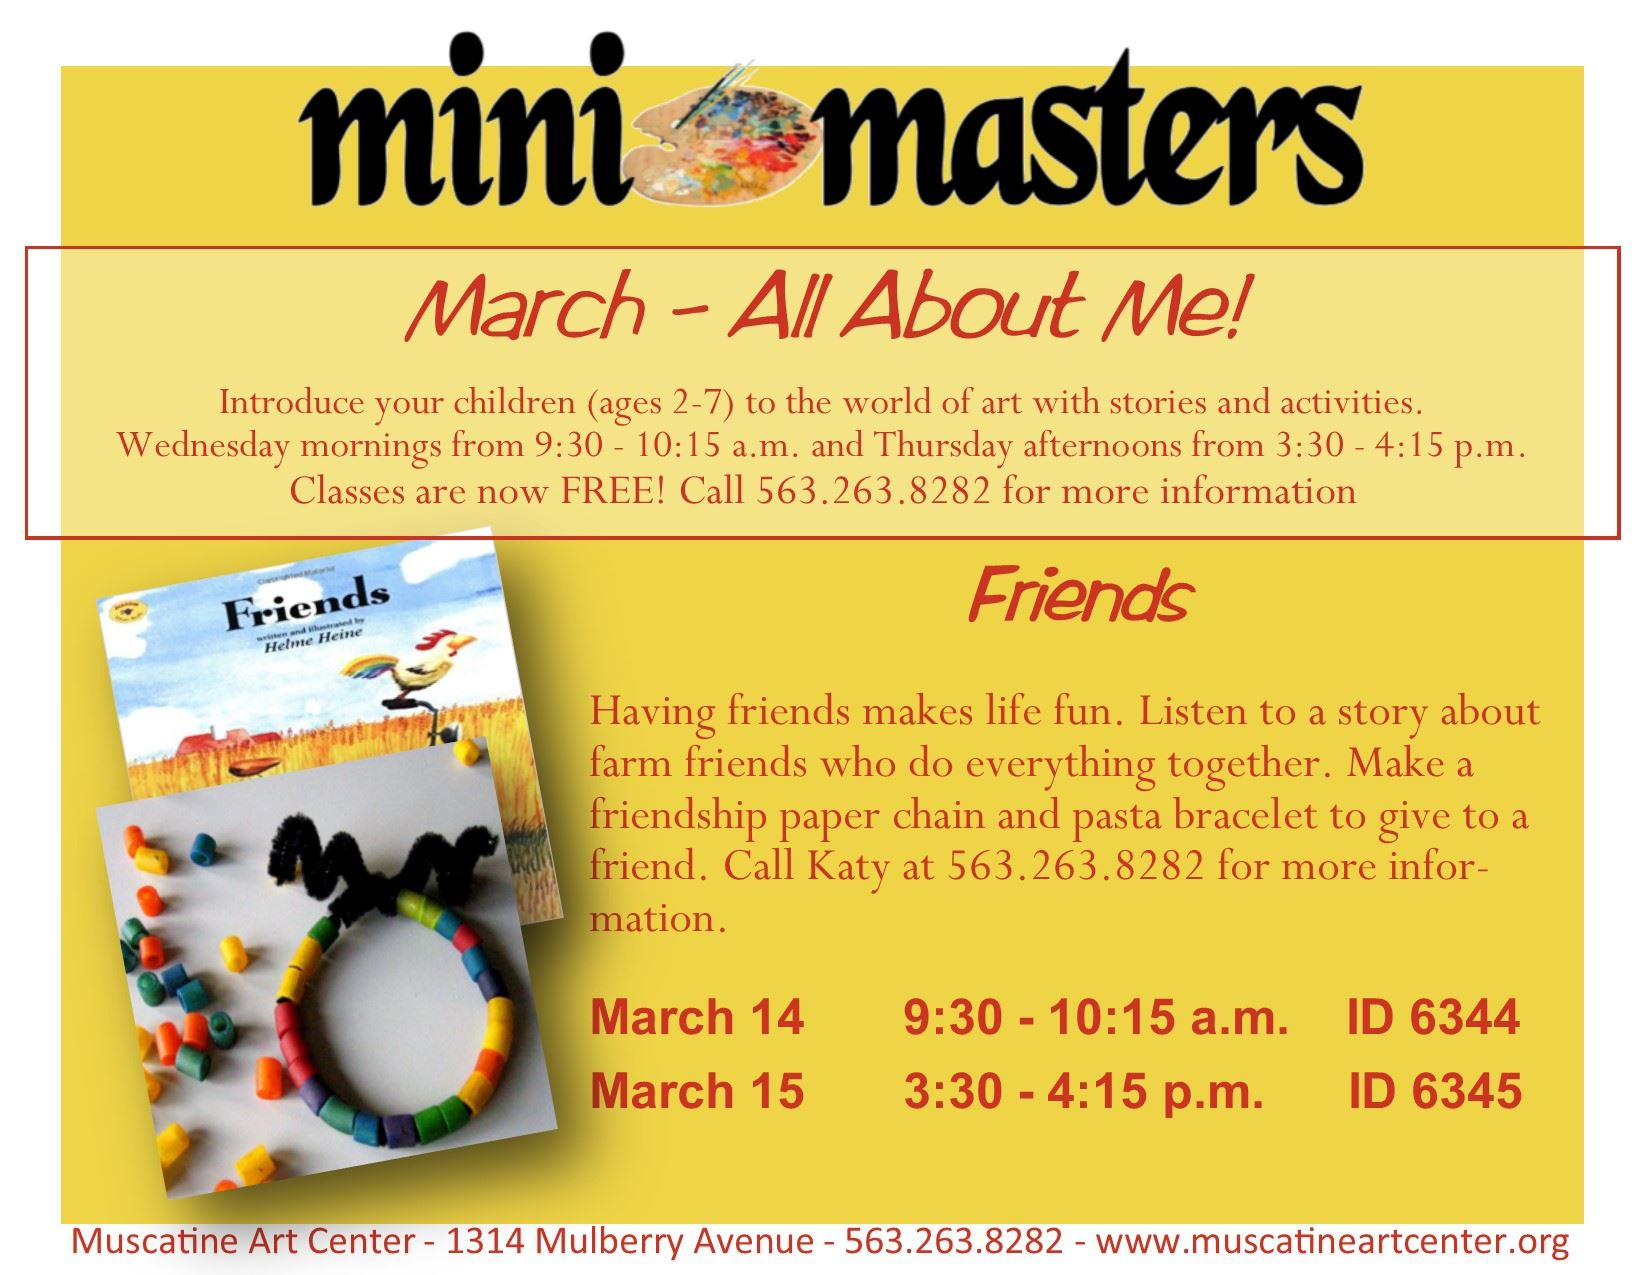 March 14-15 - Mini Masters - Friends